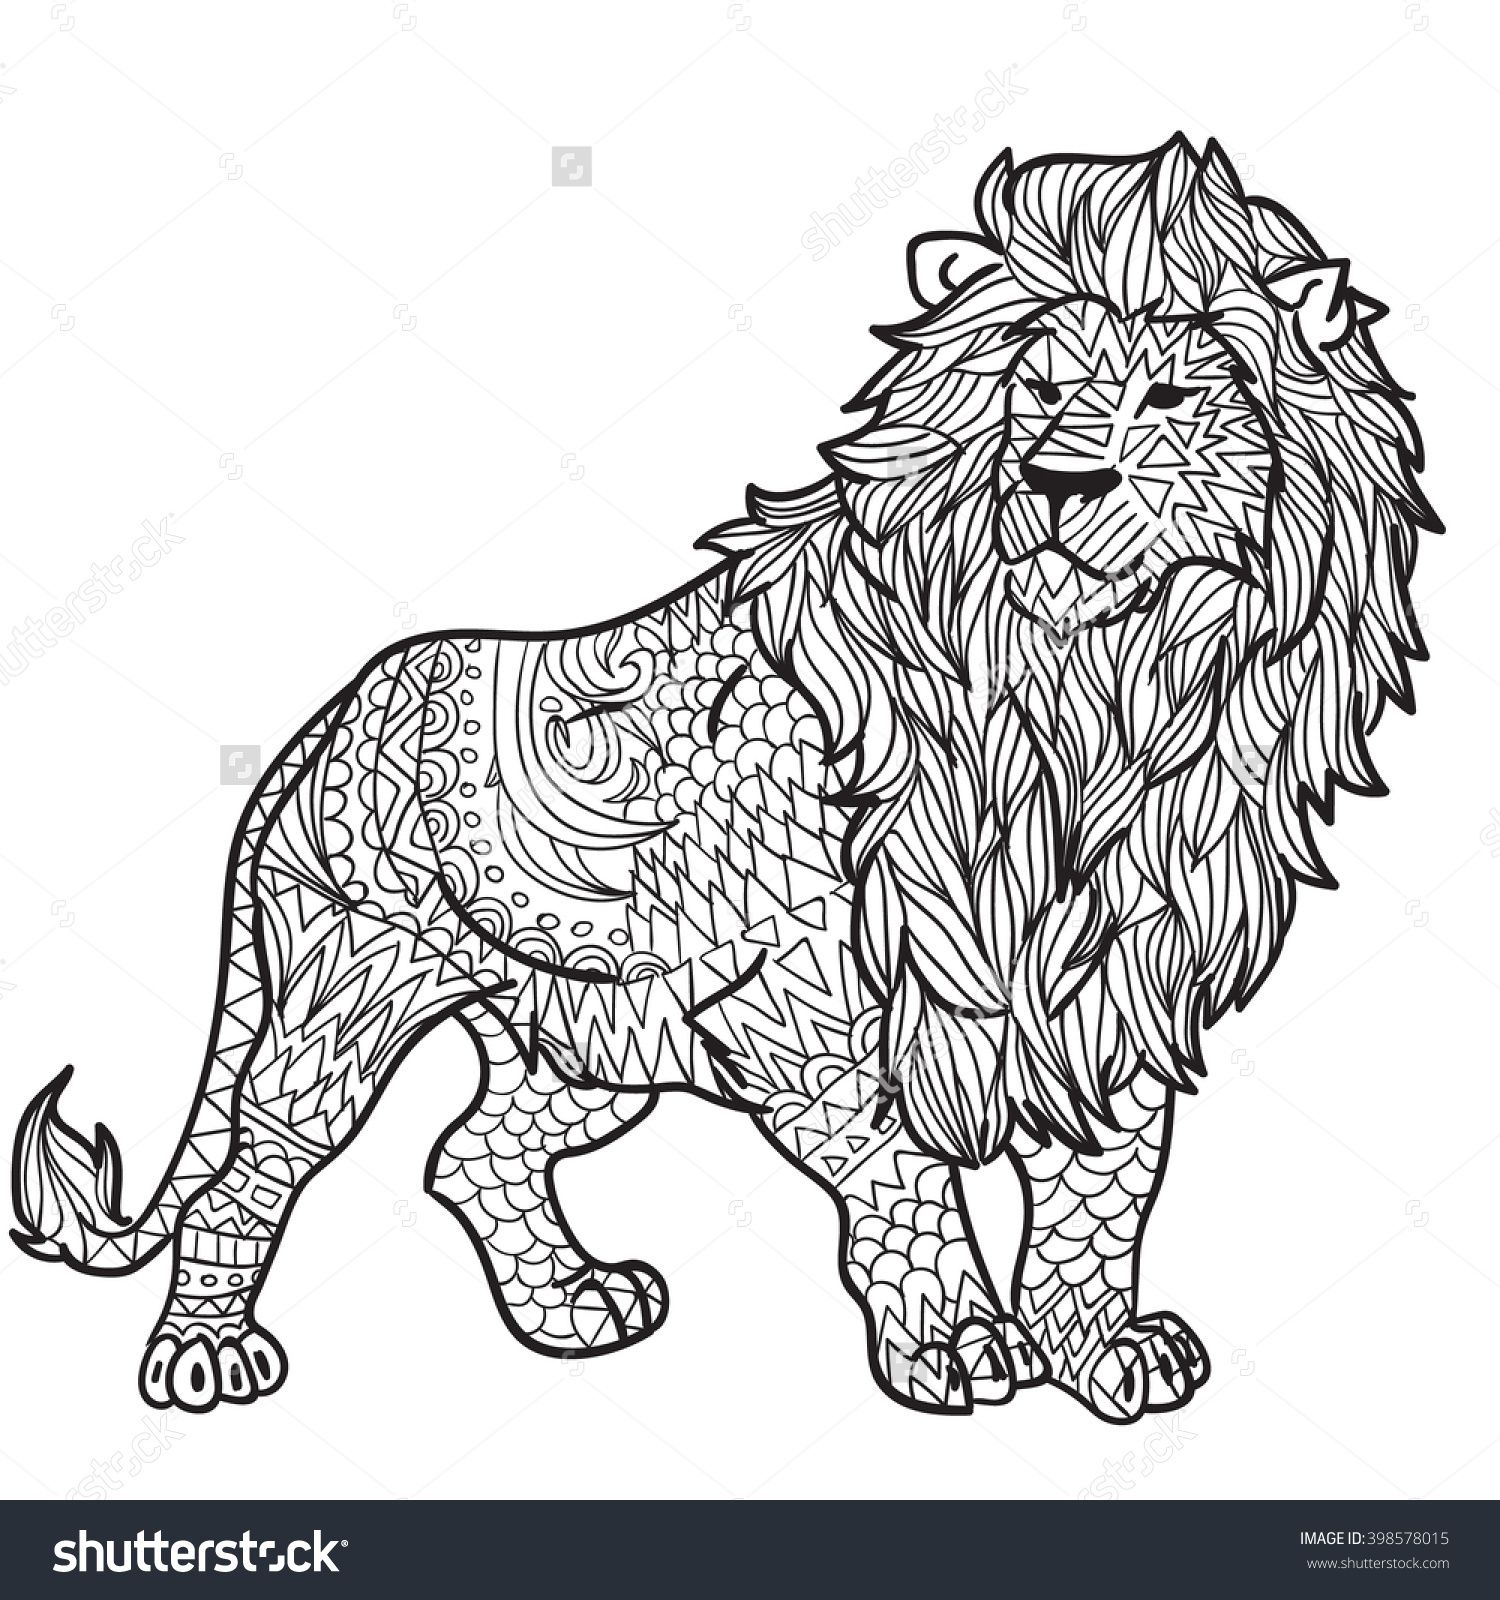 Lions coloring pictures - Hand Drawn Coloring Pages With Lion Zentangle Illustration For Adult Anti Stress Coloring Books Or